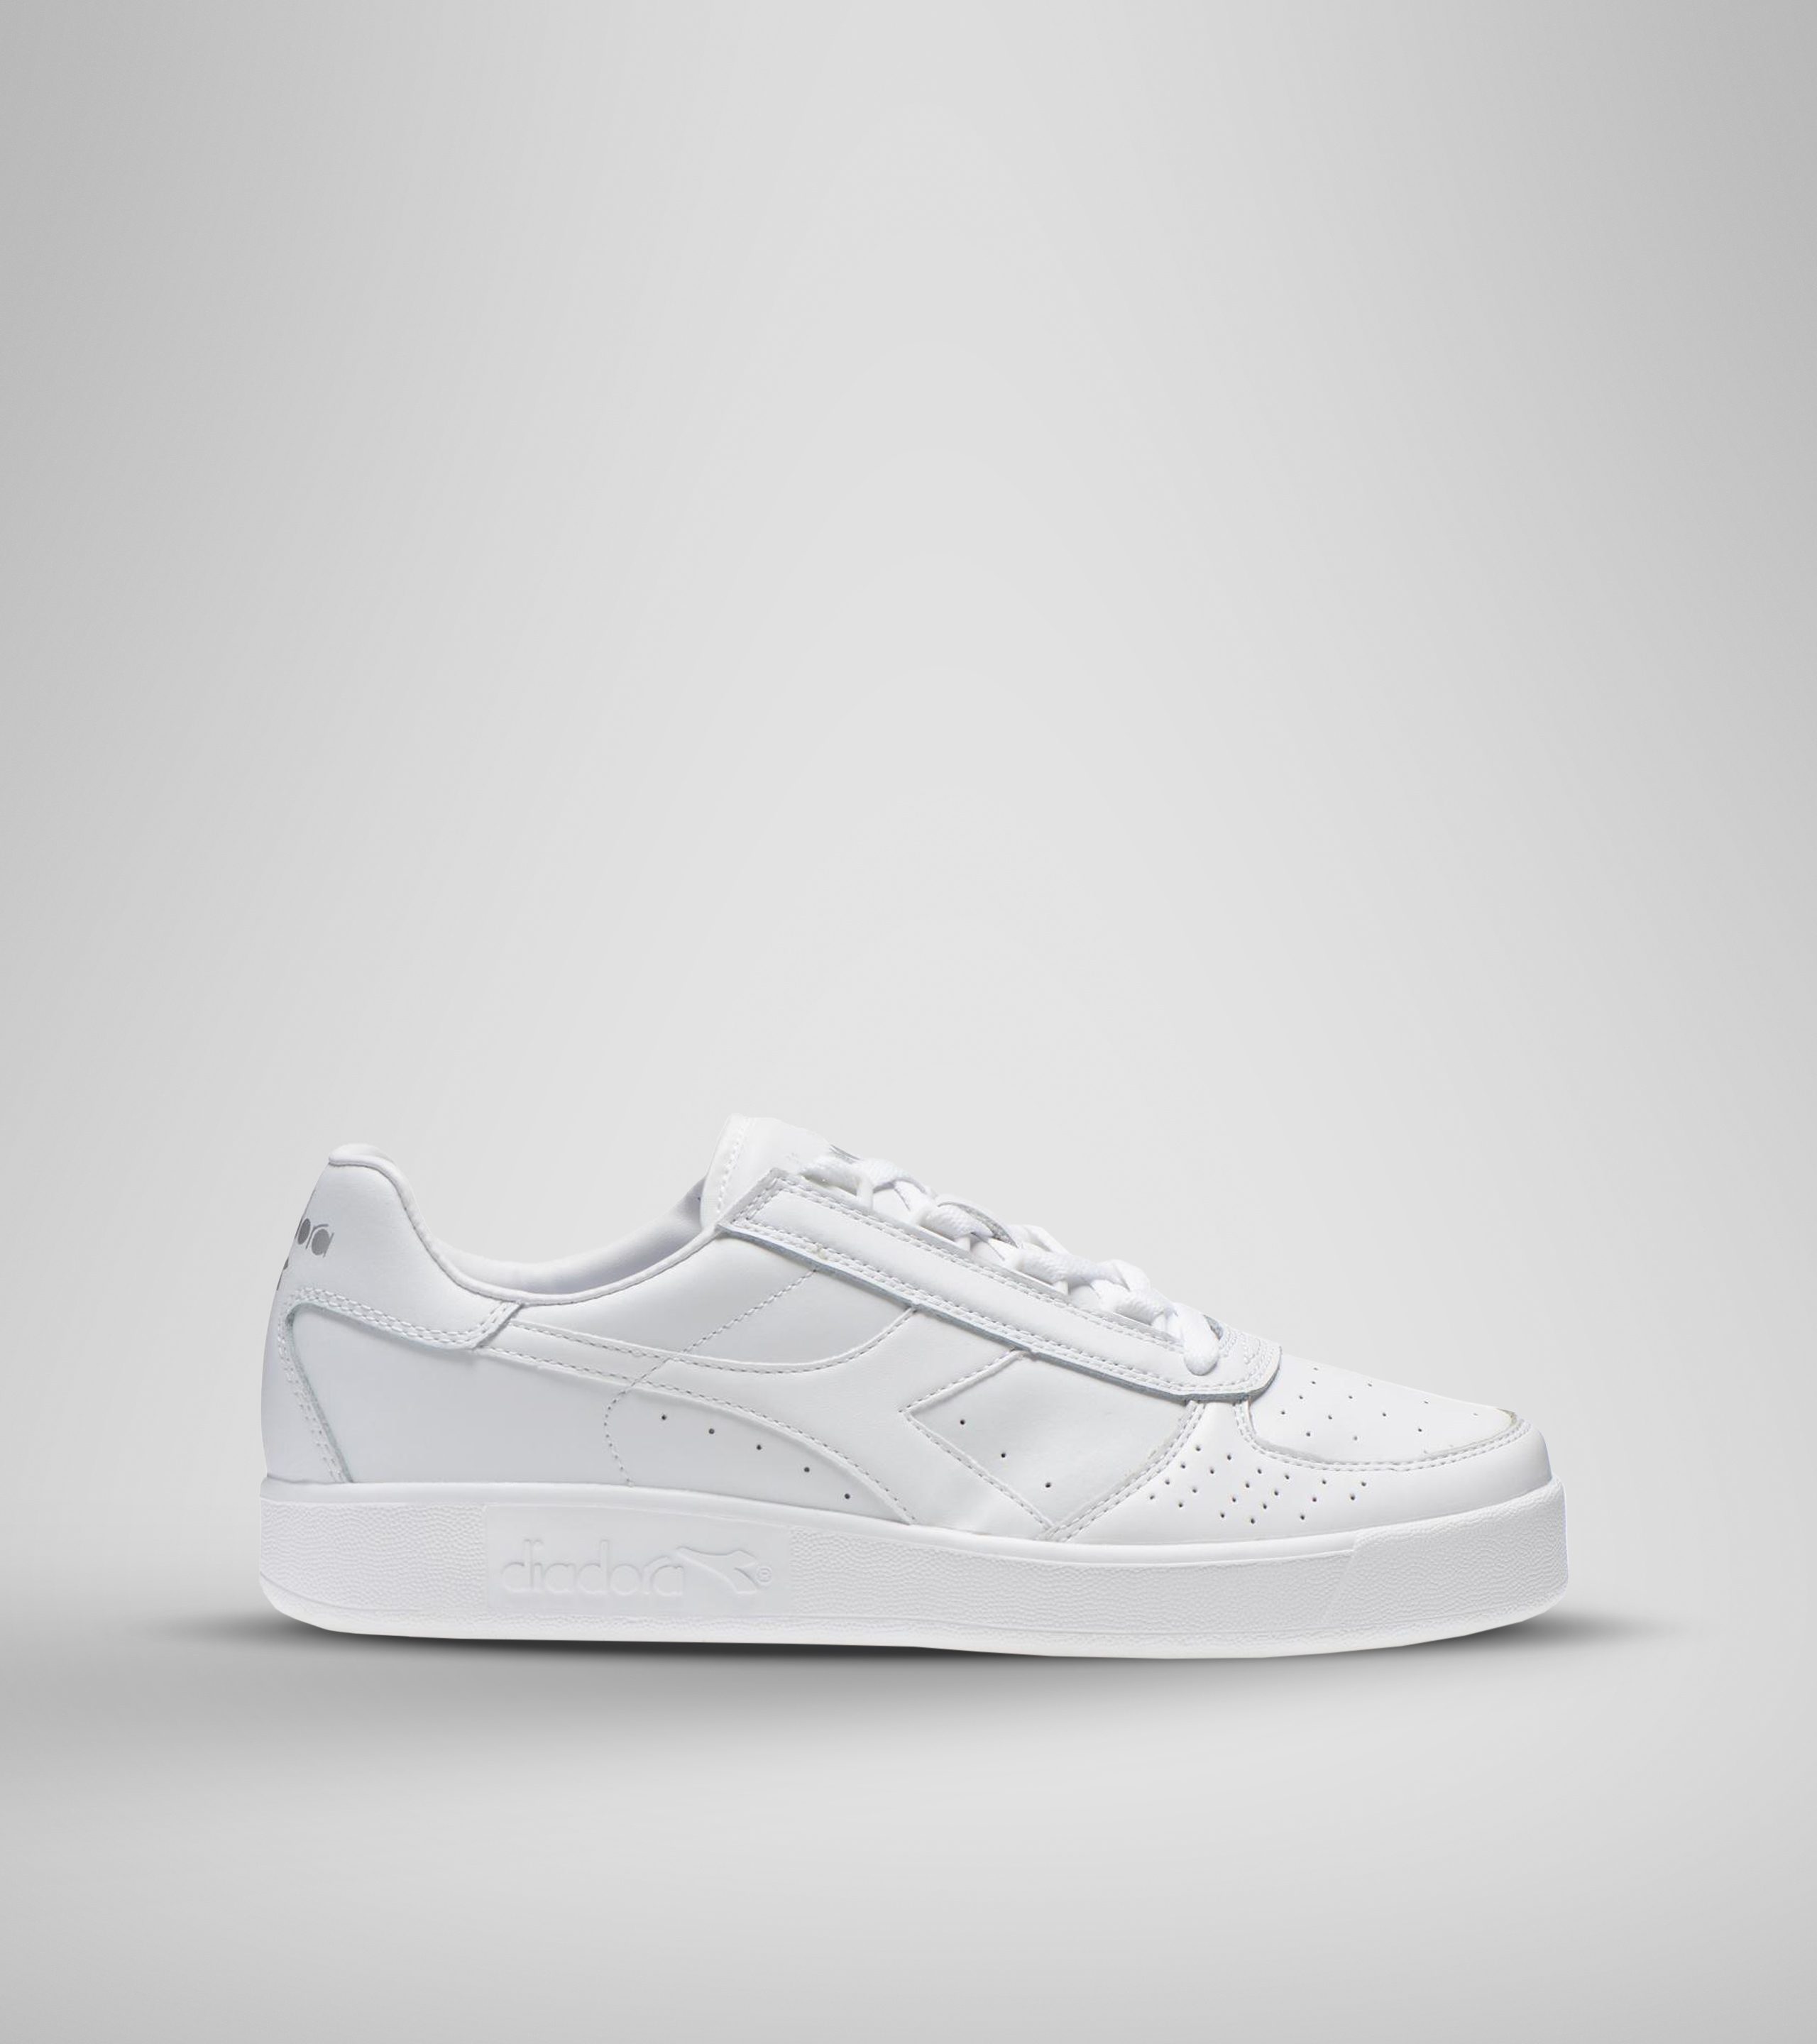 B. ELITE, OPTICAL WHITE/WHITE, swatch